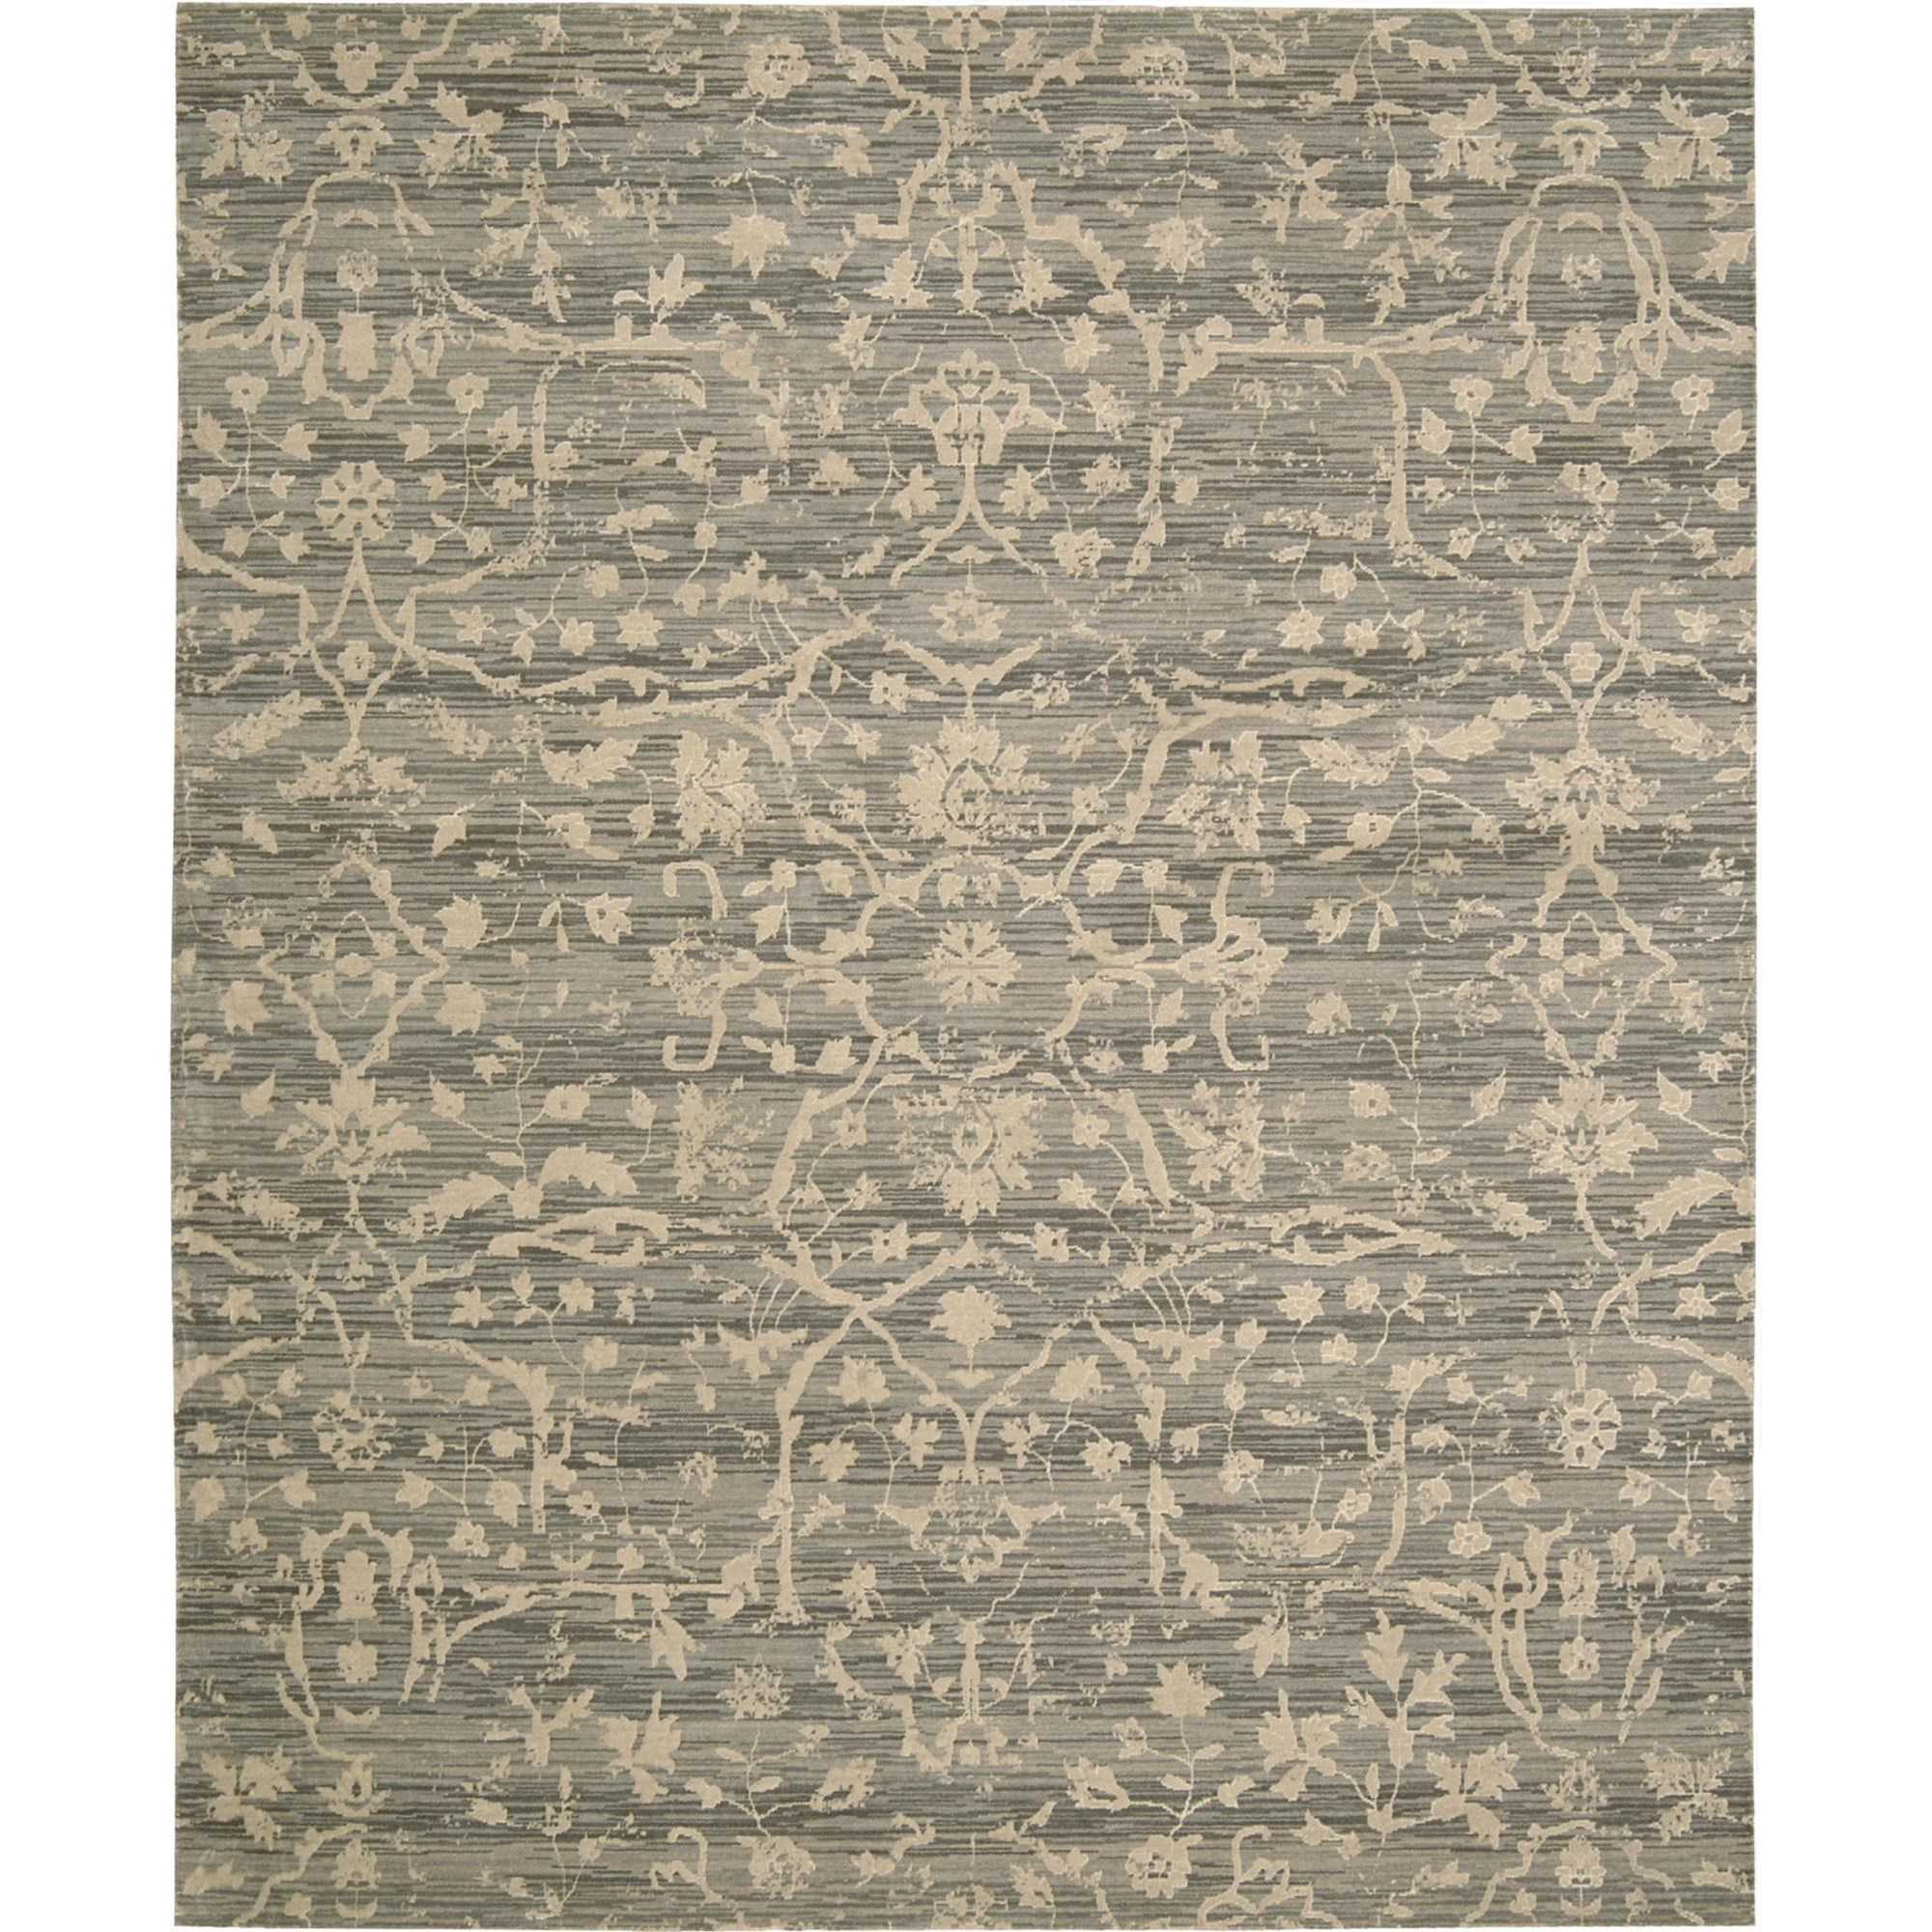 """Nourison Silk Elements 5'6"""" x 8' Taupe Area Rug - Item Number: 16487"""